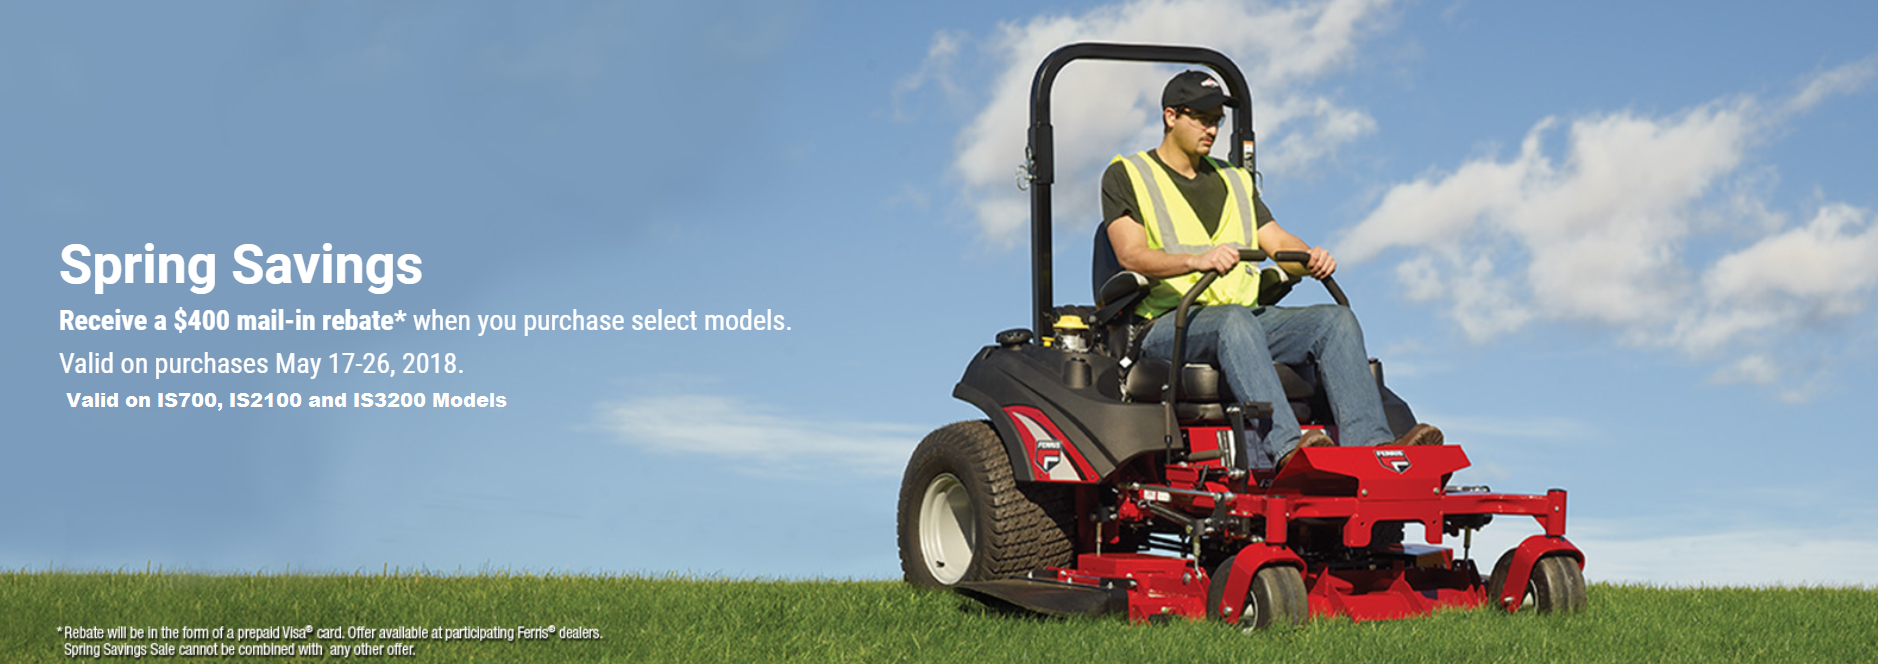 Lawn Mowers | McGuires Distinctive Truck in Carroll OH